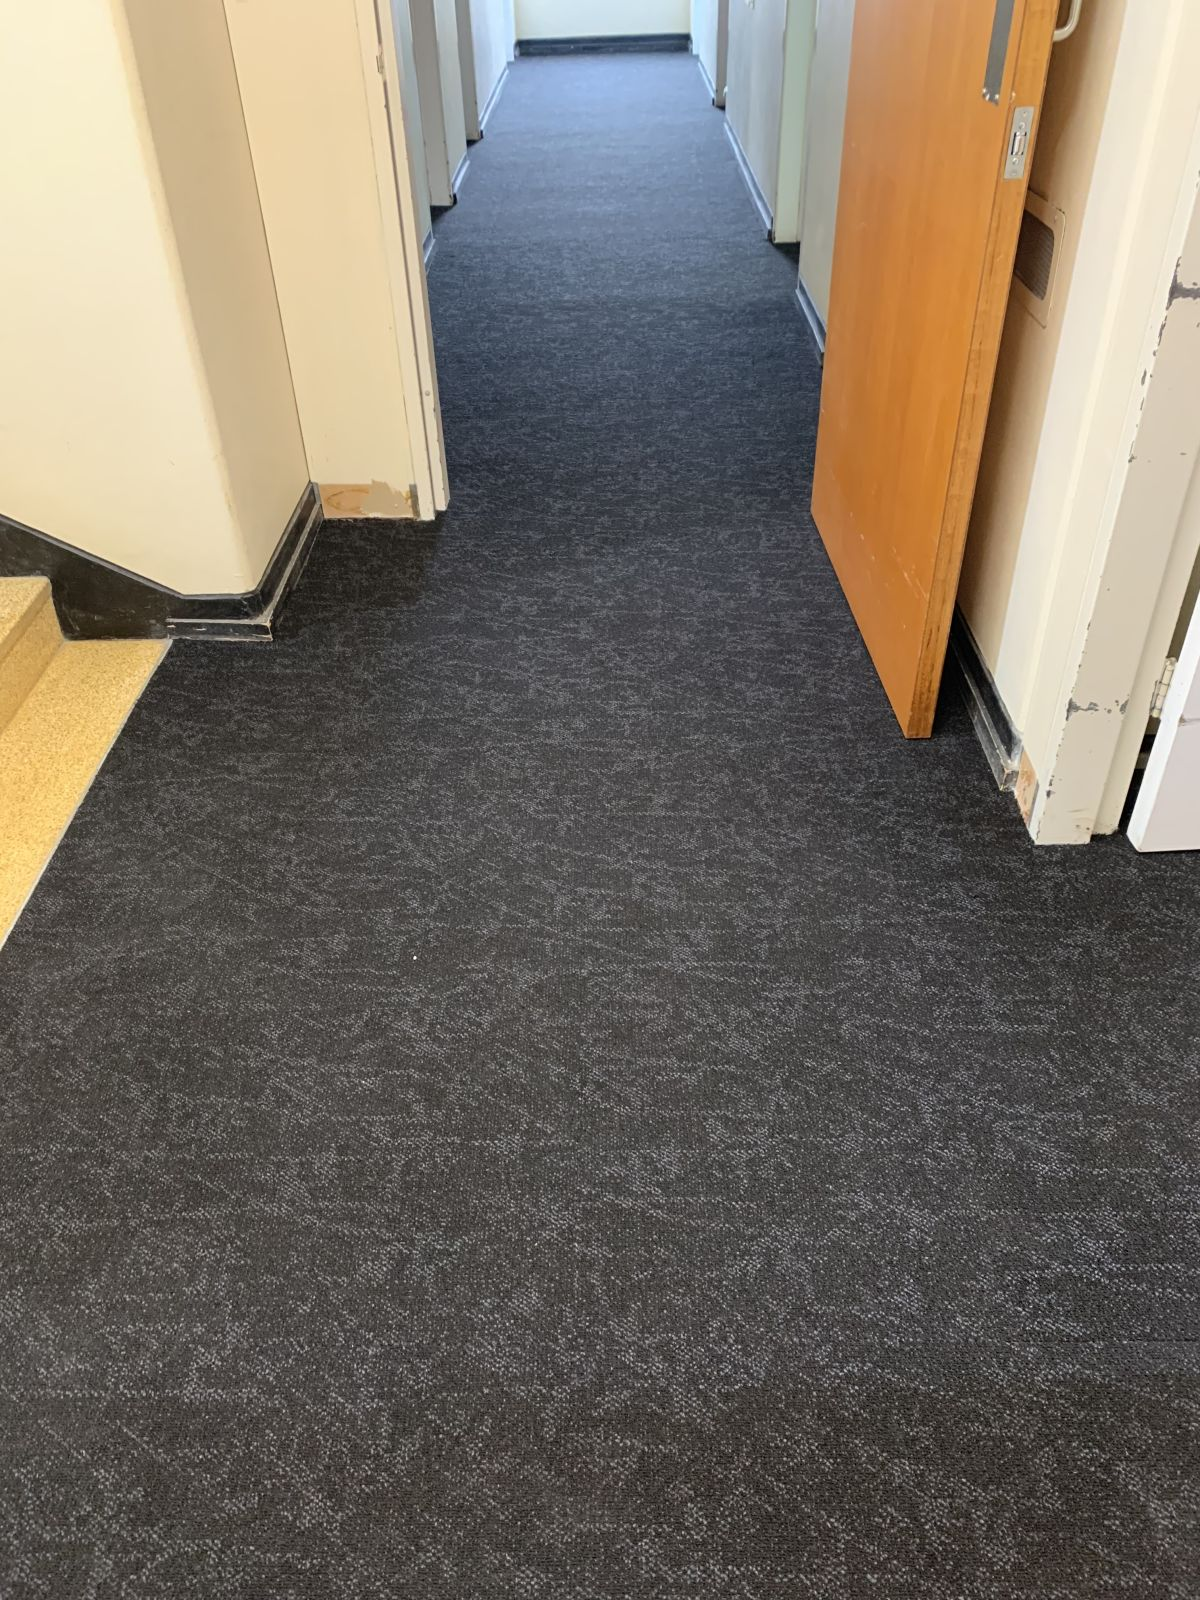 Hospital in Lismore New South Wales, Carpet.